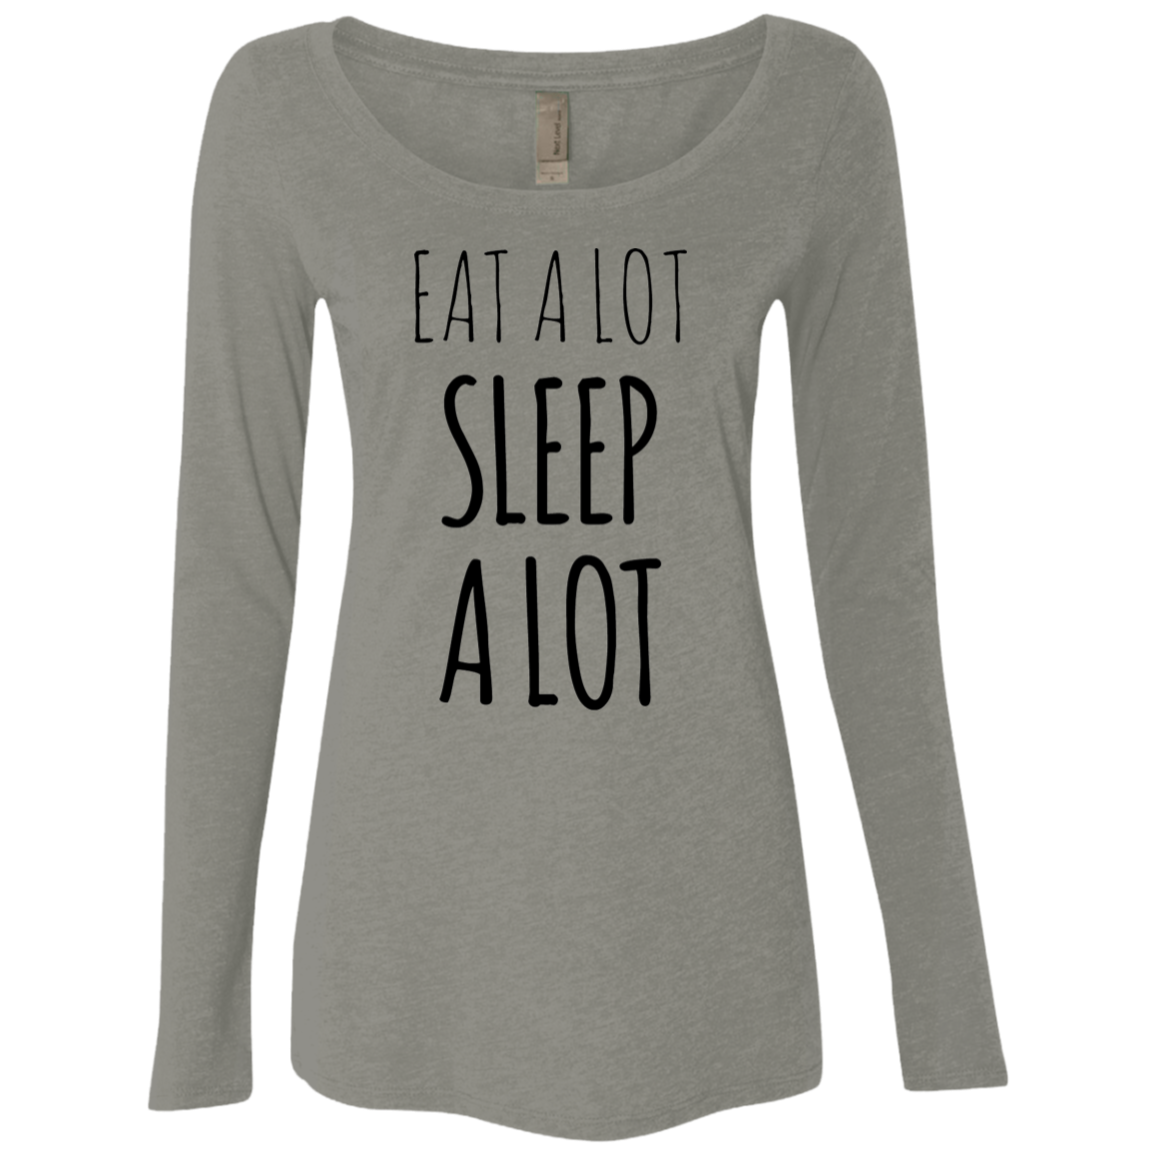 Eat a lot Sleep a lot Women's Long Sleeve Tee - Trendy Tees